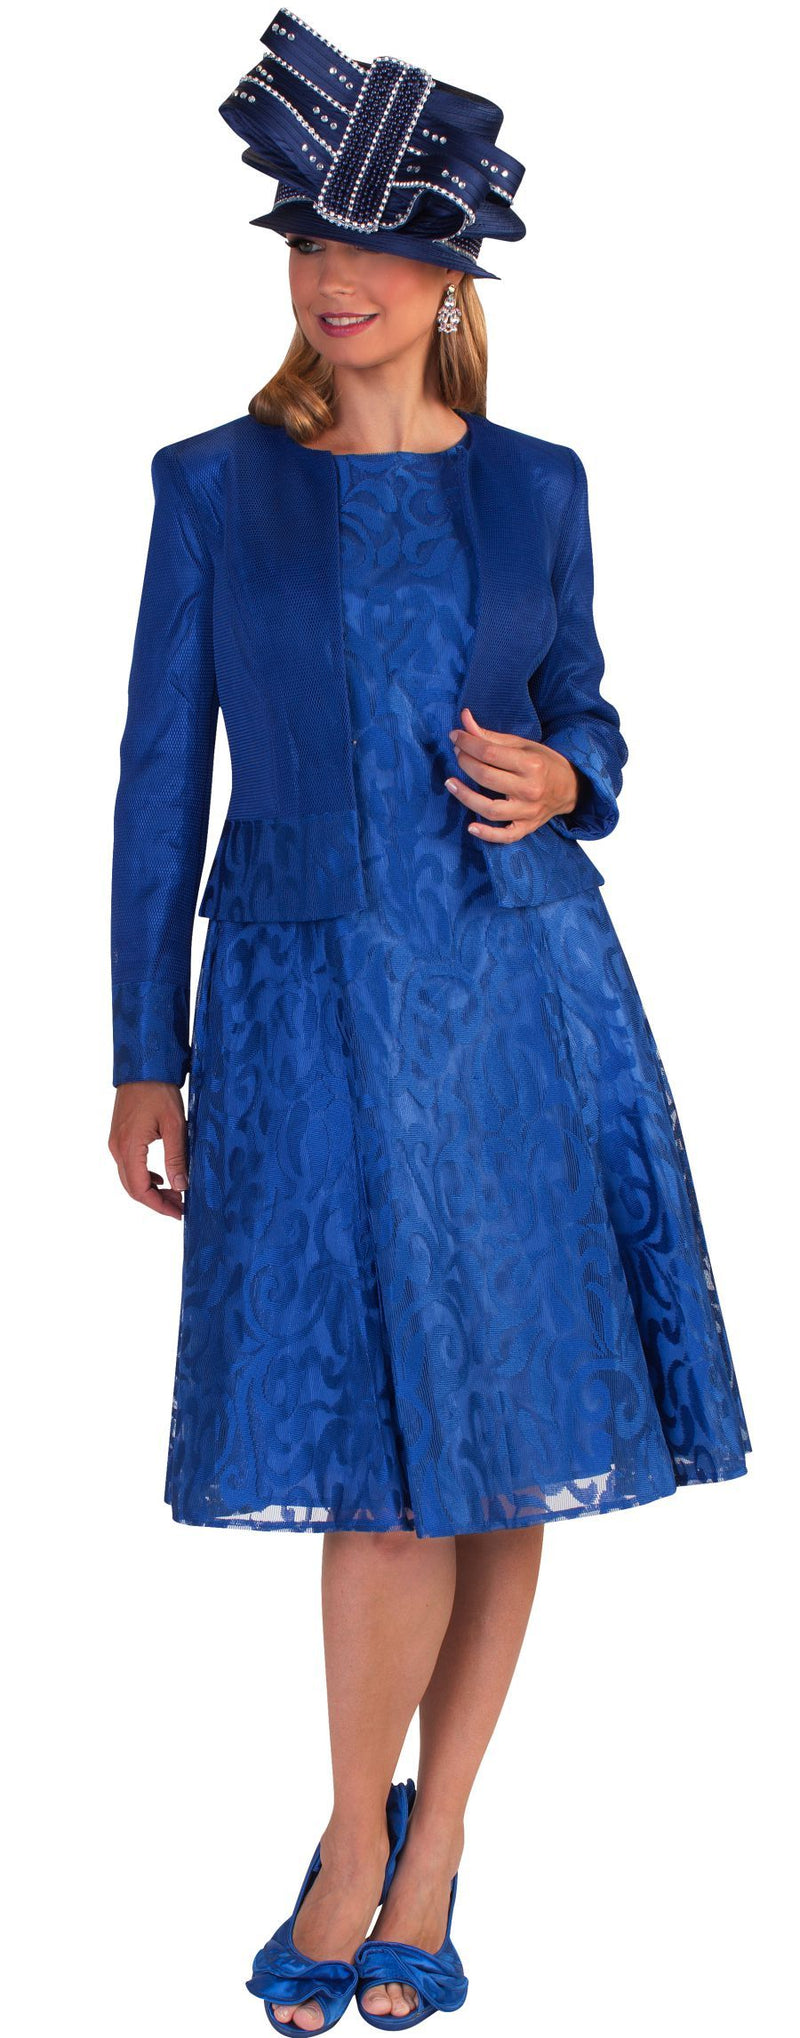 Tally Taylor Dress 4644-Bright Navy - Church Suits For Less